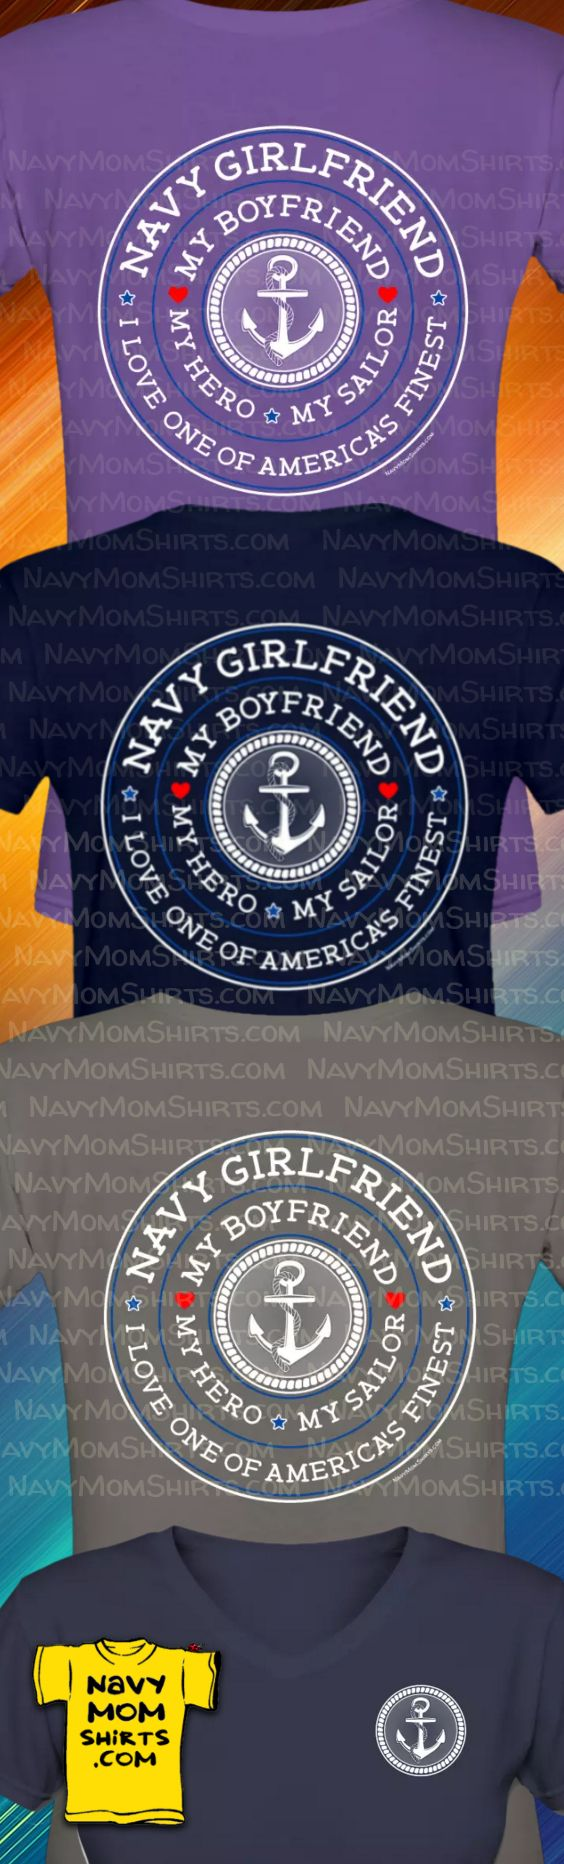 I freakin' love this shirt!!!! Proud Navy Girlfrend Shirts - My Boyfriend My Hero Shirts. Find them at NavyMomShirts.com